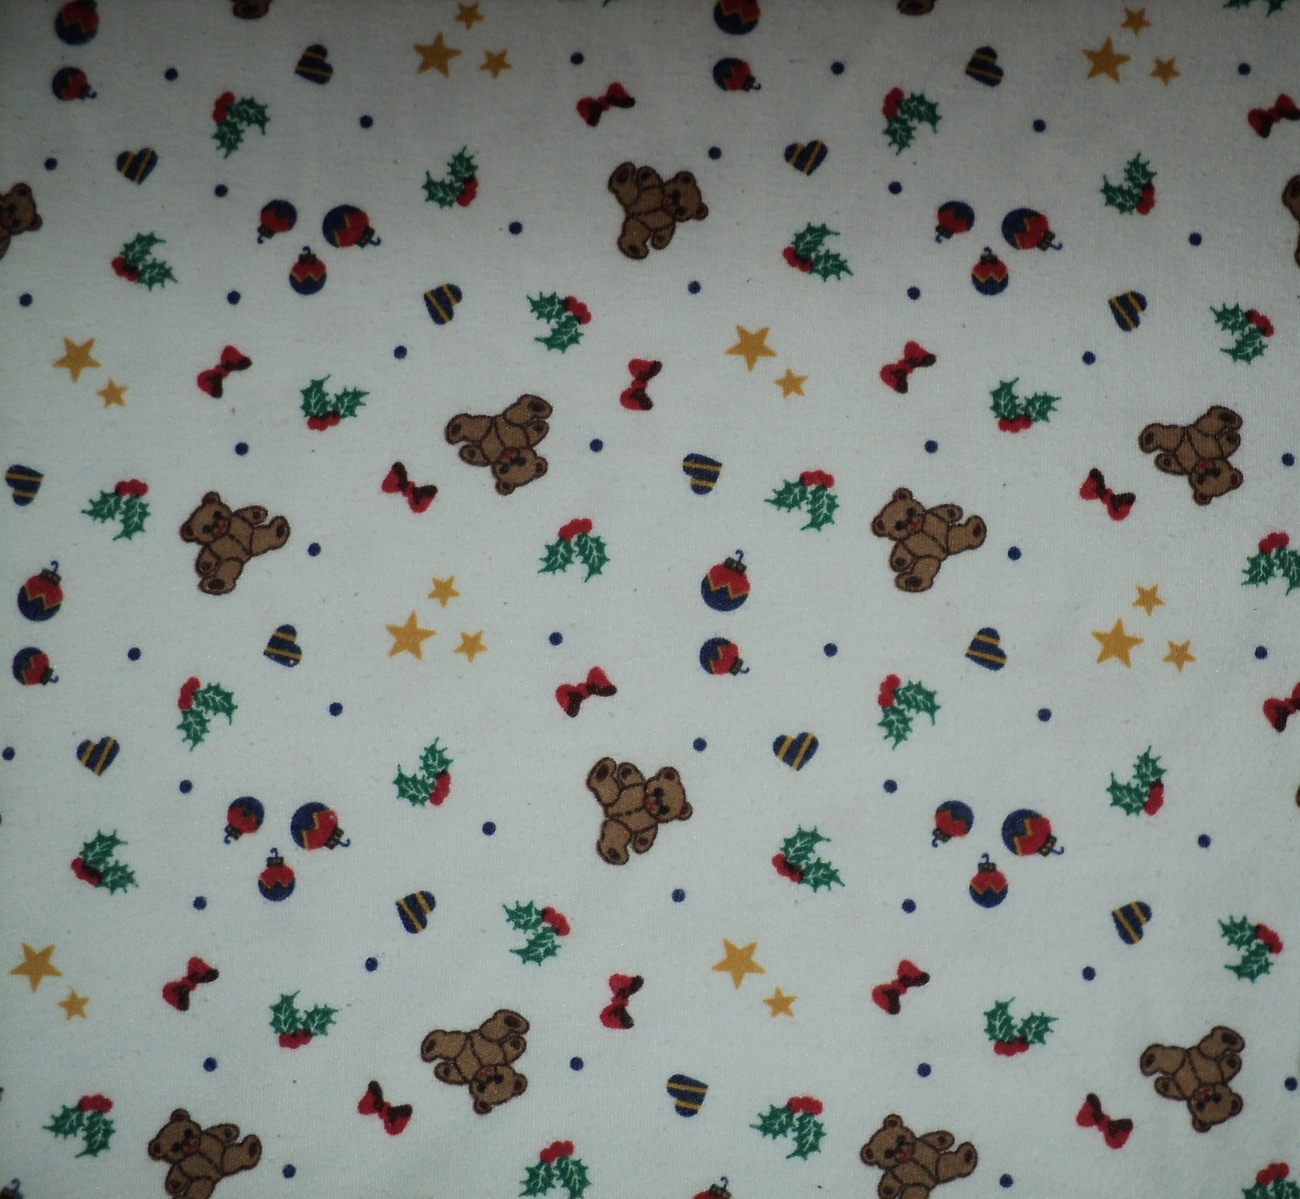 Ugly Christmas Shirt for Sweater Bears Ornament Star Size Medium 43 Chest Unisex image 3